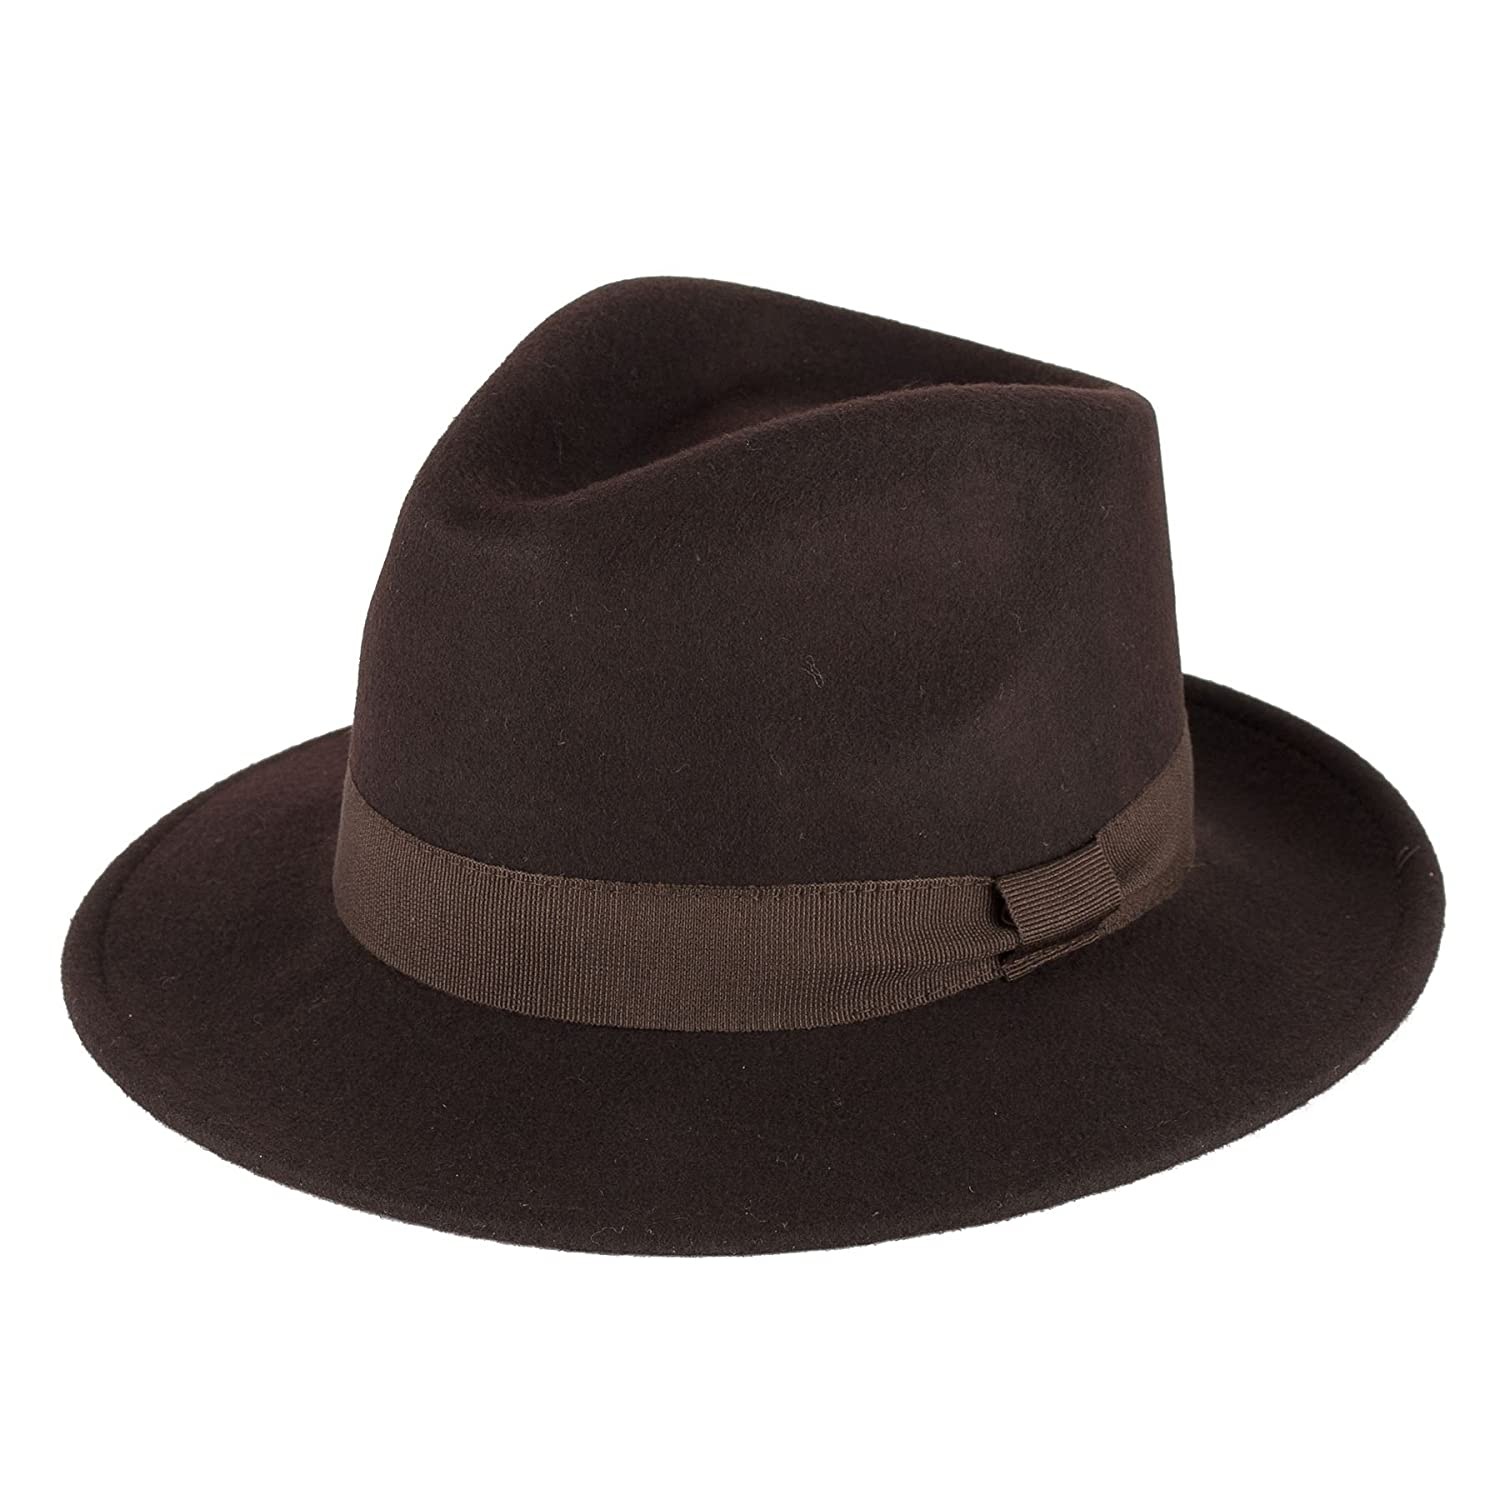 828747f7ebe8aa Mens Ladies Fedora Hat 100% Wool Felt Made In Italy Handmade With Grosgrain  Band d2d Hats d2d 8447